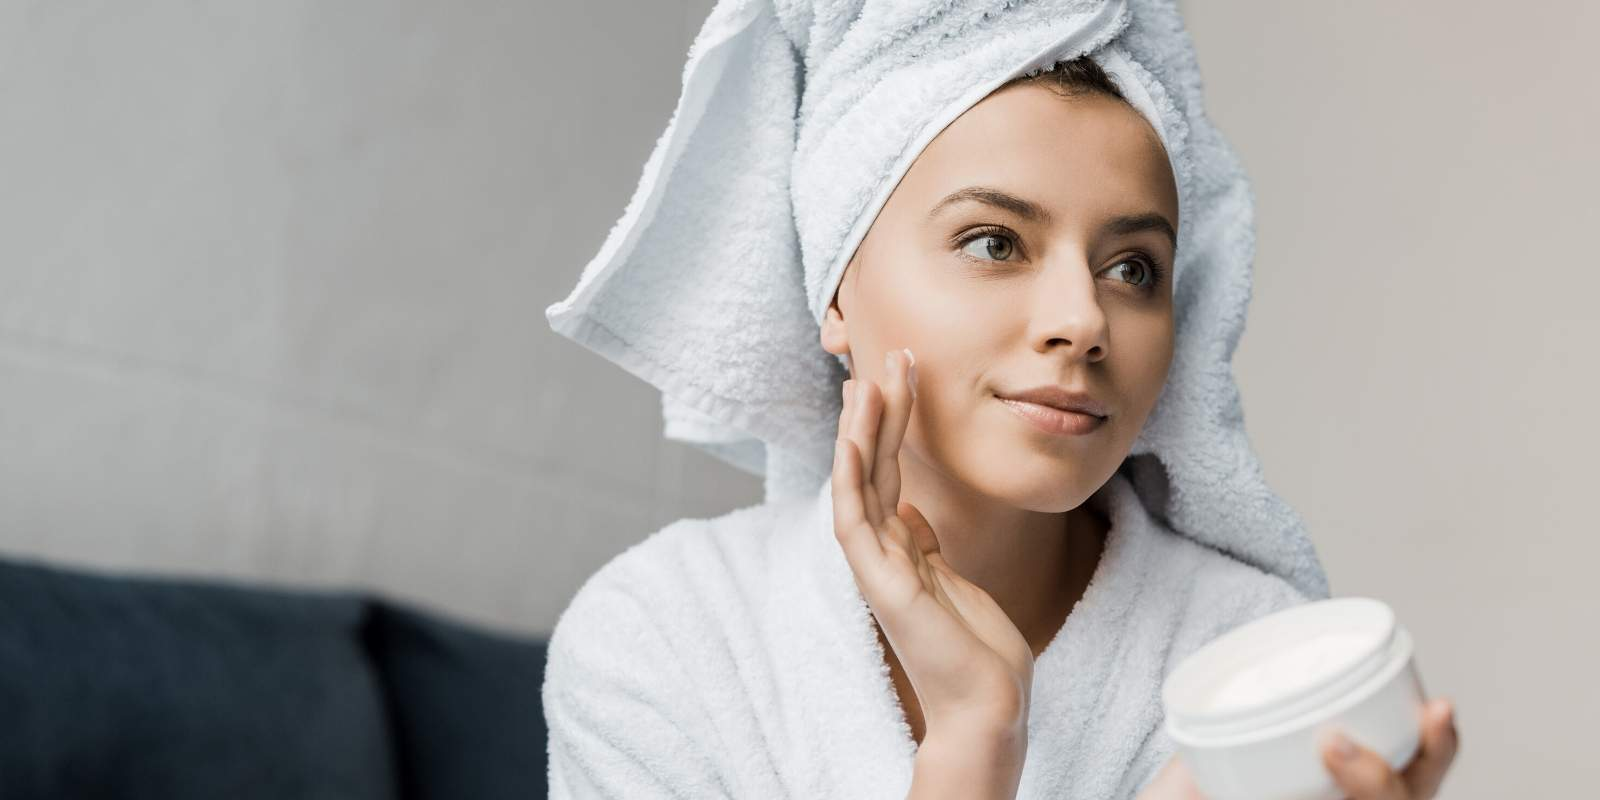 How To Do An At Home Facial: 6 Simple Steps To Emulate The Spa Experience